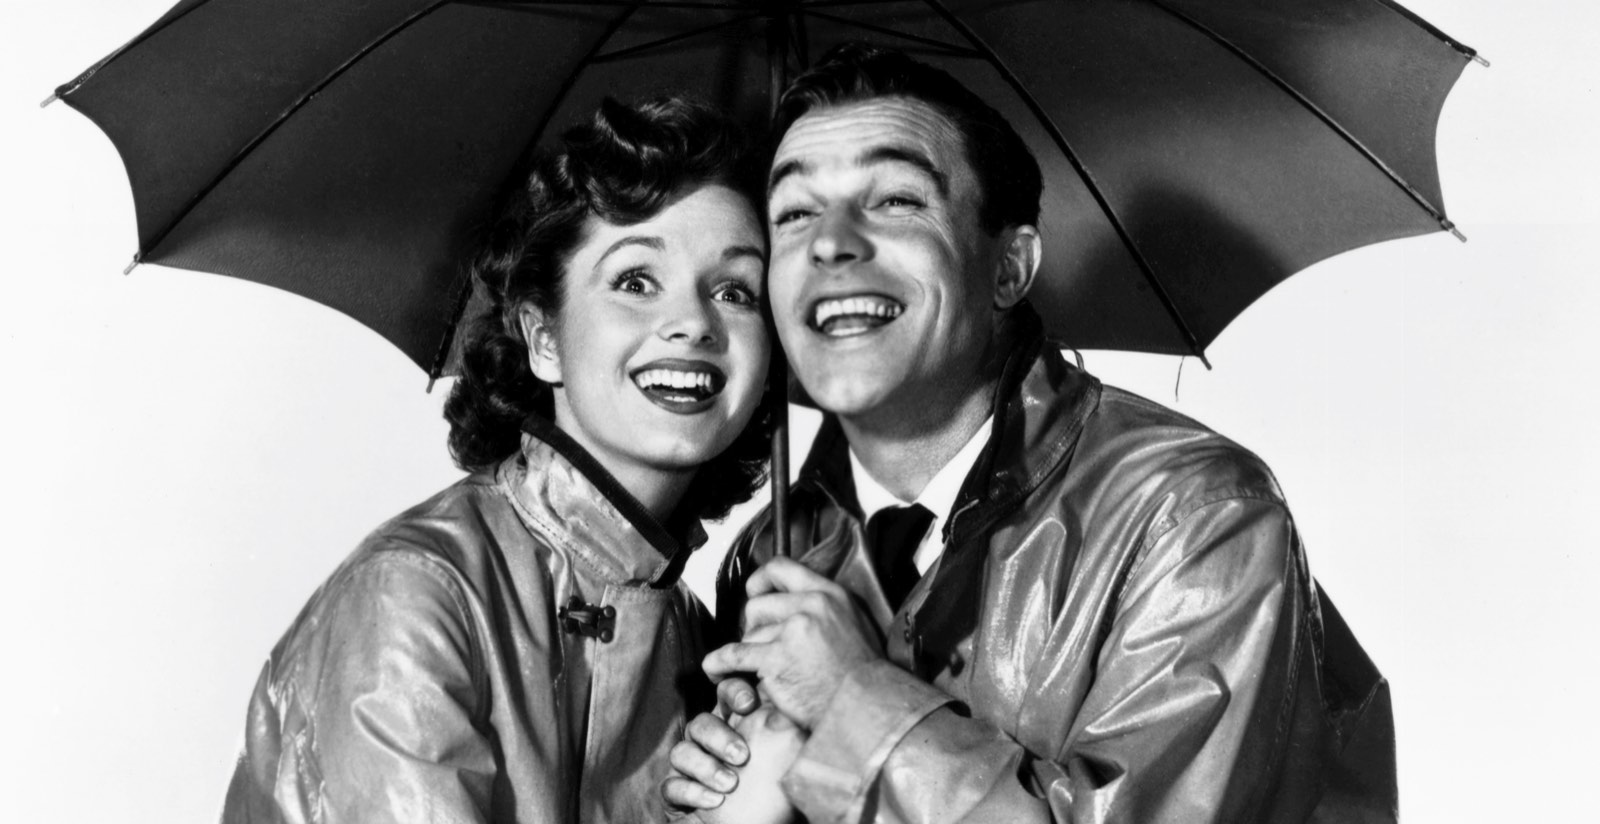 From the archive: Singin' In The Rain